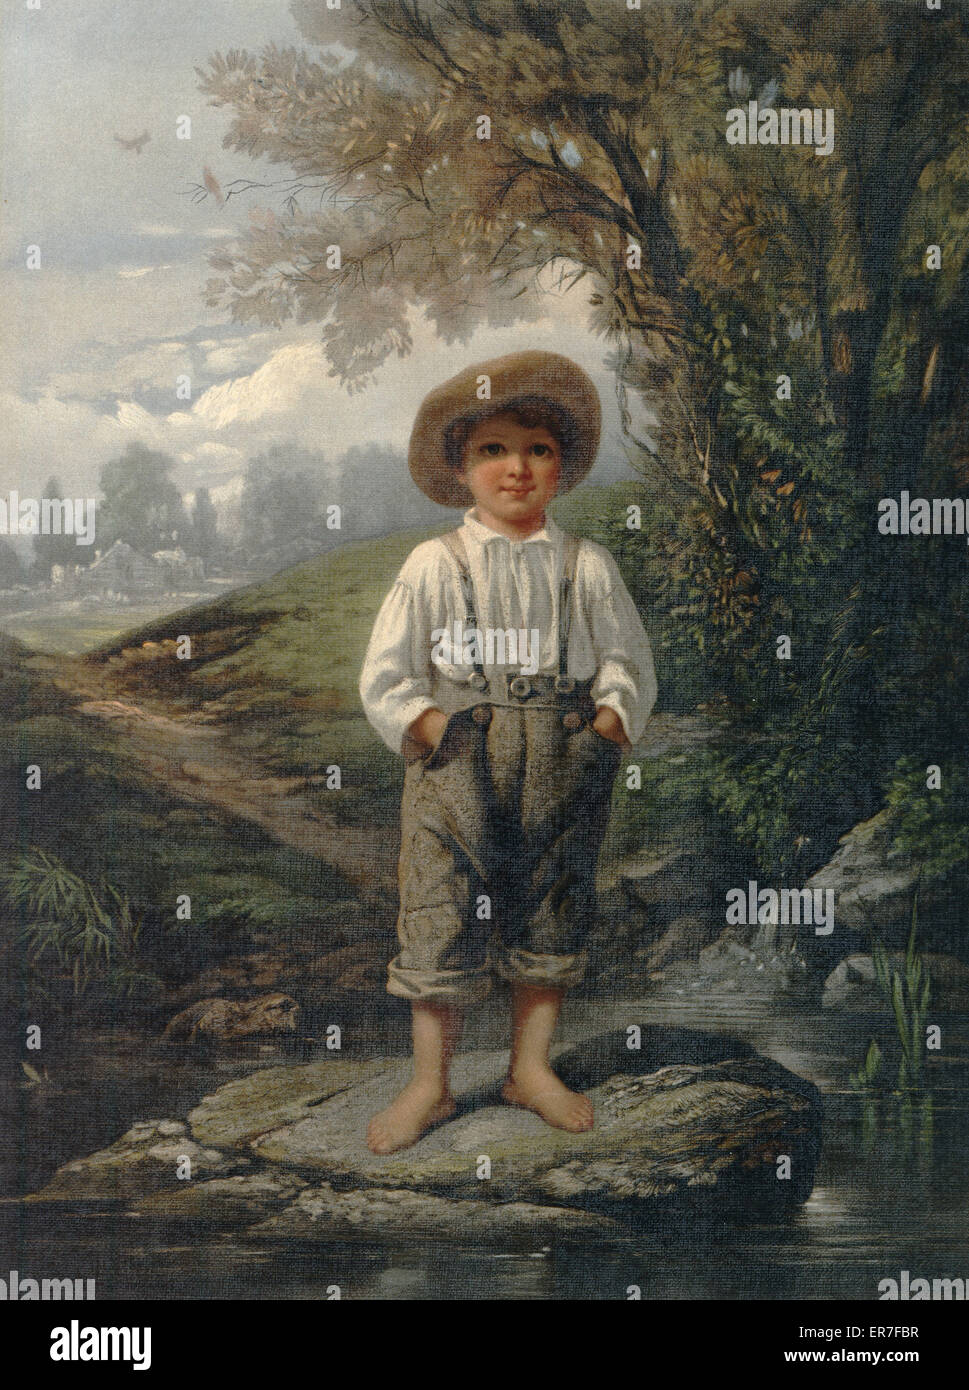 Whittier's barefooted boy. Print shows a full-length portrait of a young, barefoot boy standing on a rock in - Stock Image